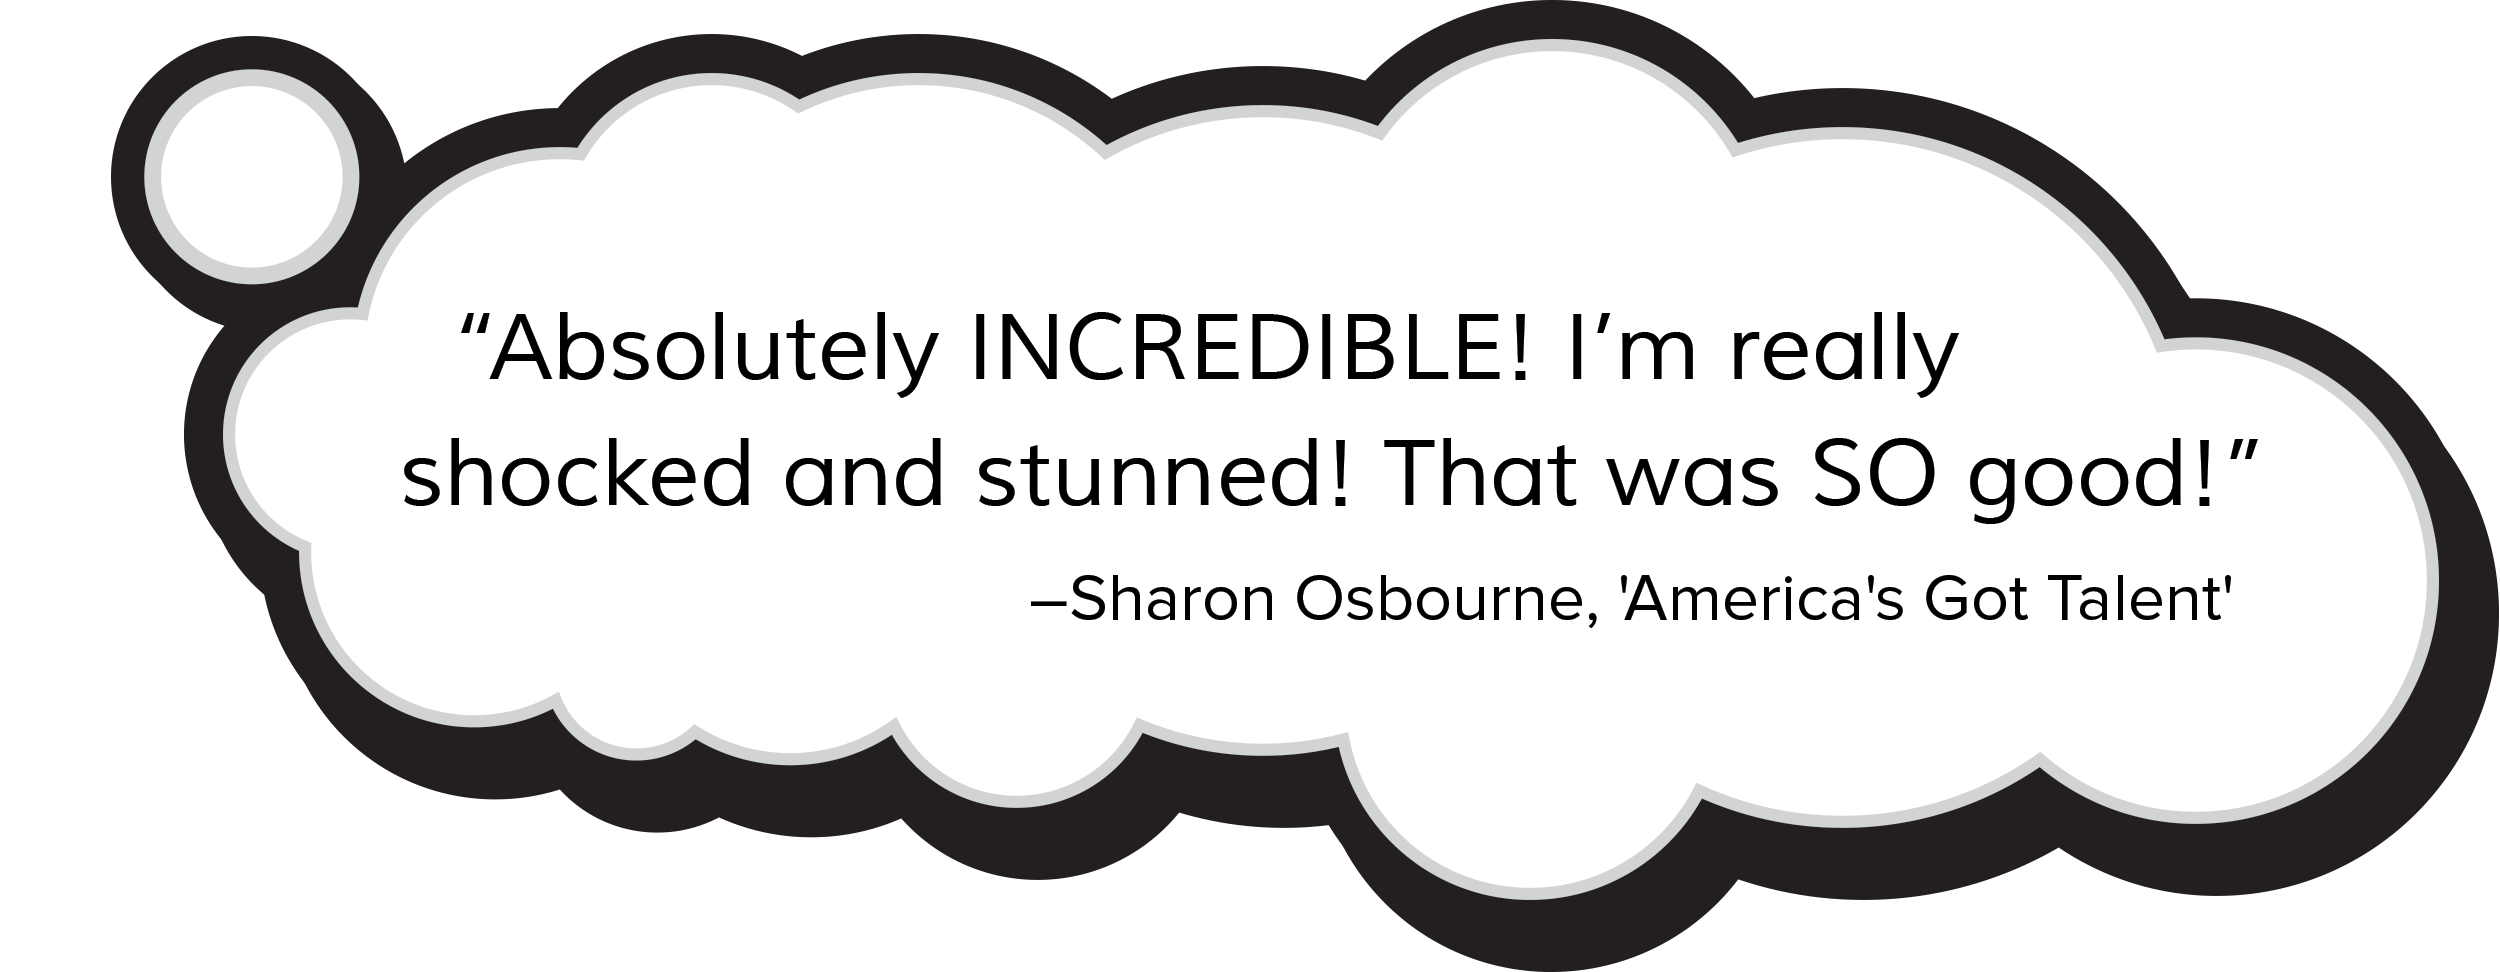 Sharon-quote.png